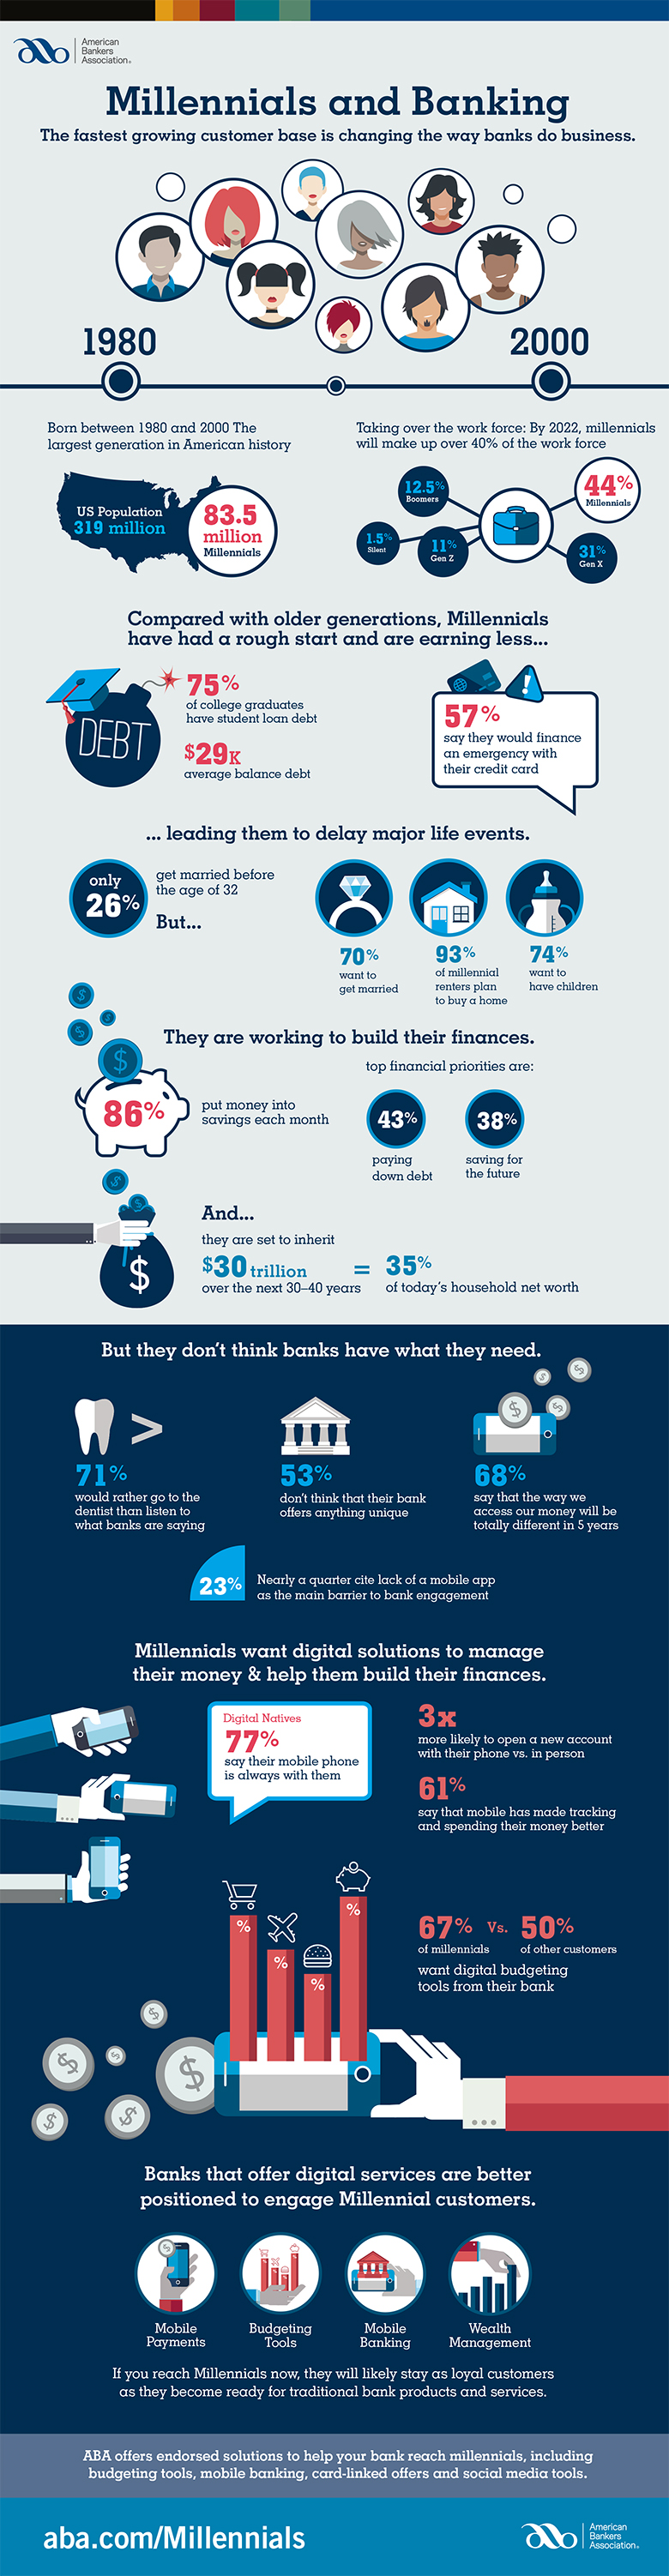 Millennials and banking infographic